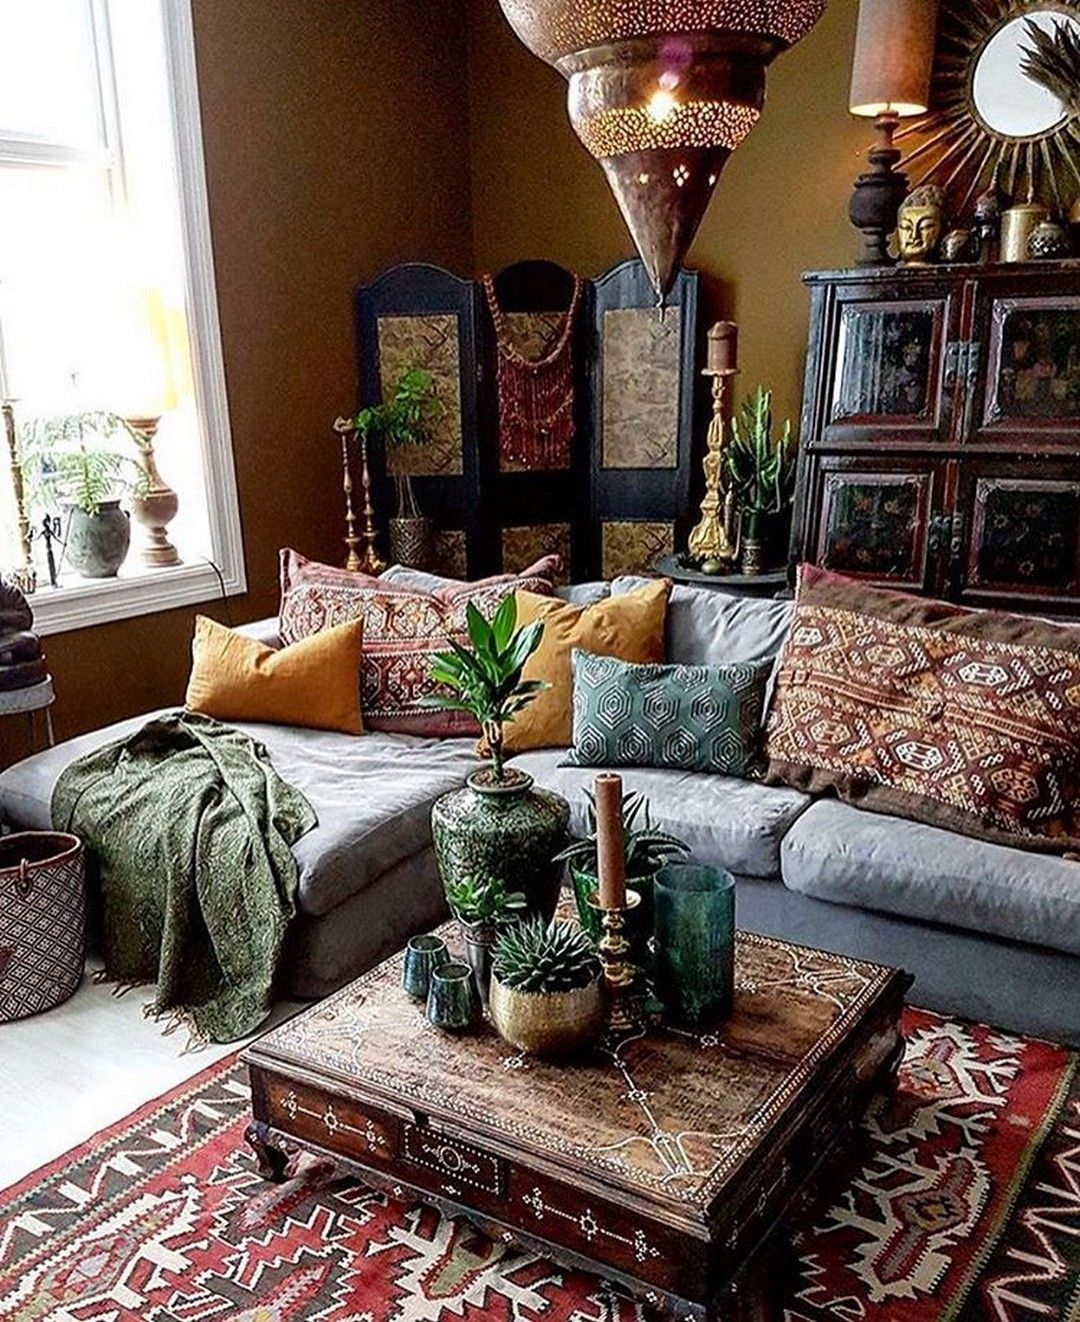 Diy Wohnzimmer 18 Diy Indoor Bohemian Decorating Ideas Diy Home Decor